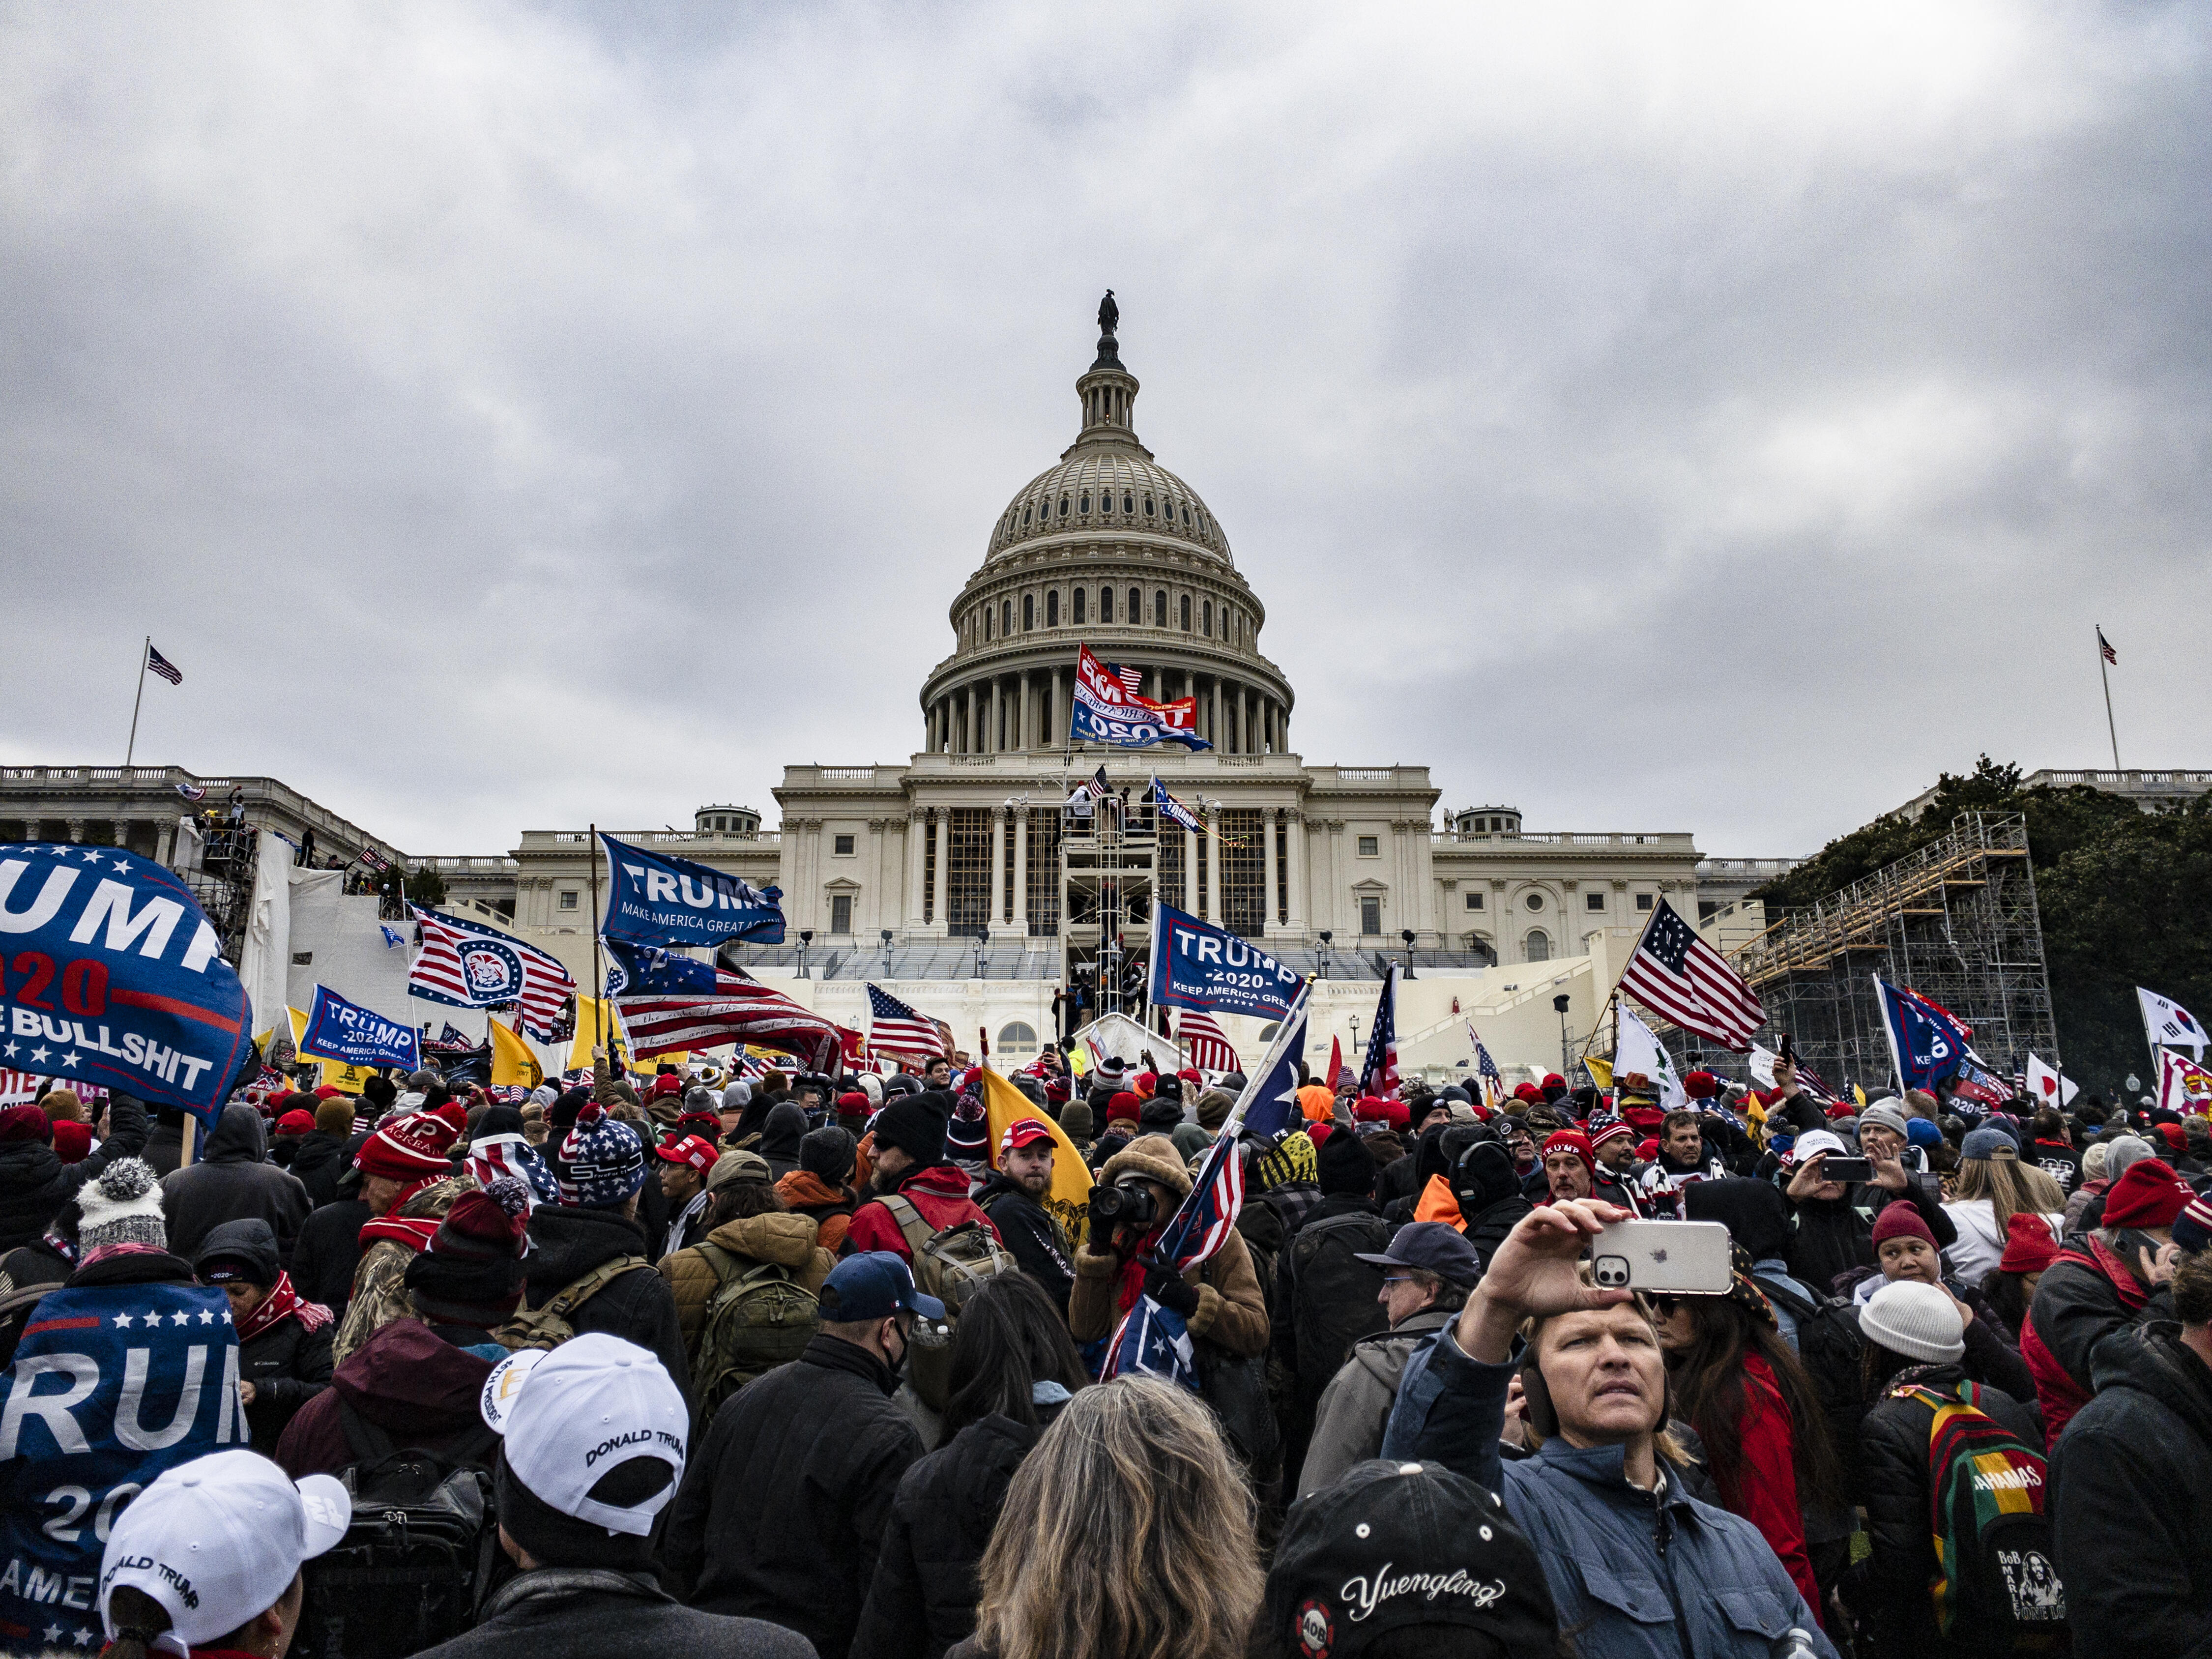 Pro-Trump protesters outside the US Capitol